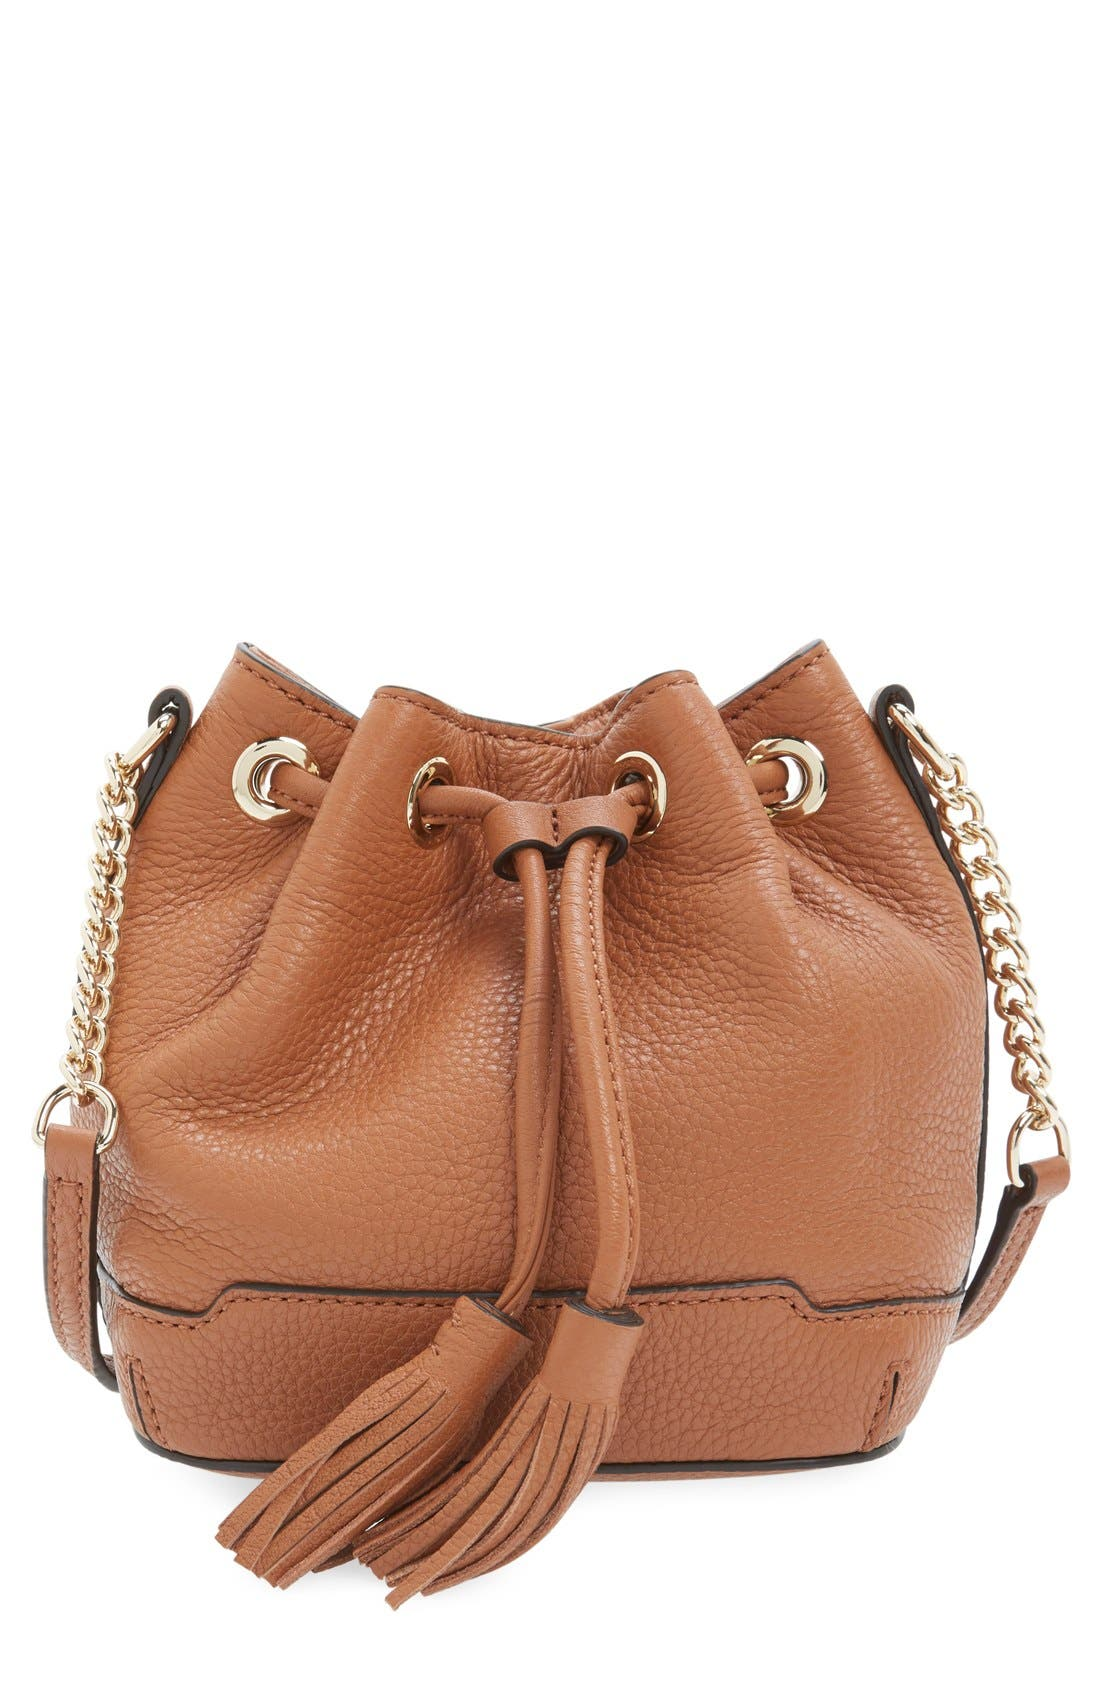 Alternate Image 1 Selected - Rebecca Minkoff 'Micro Lexi' Bucket Bag